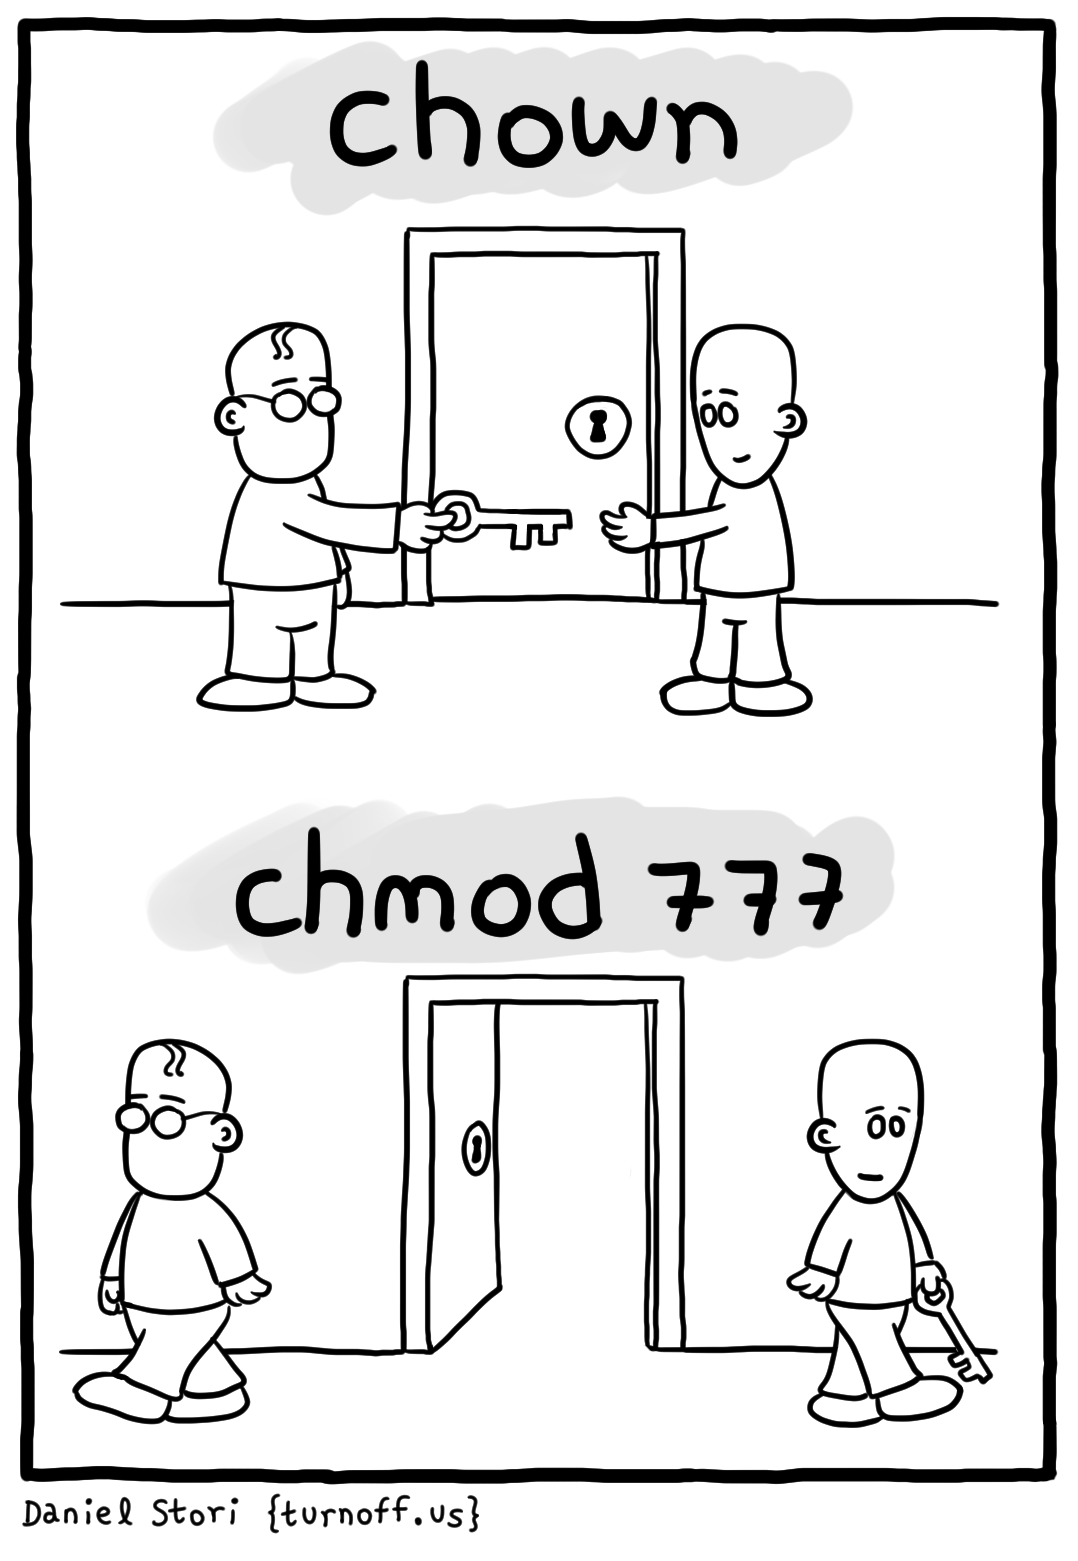 chown - chmod geek comic